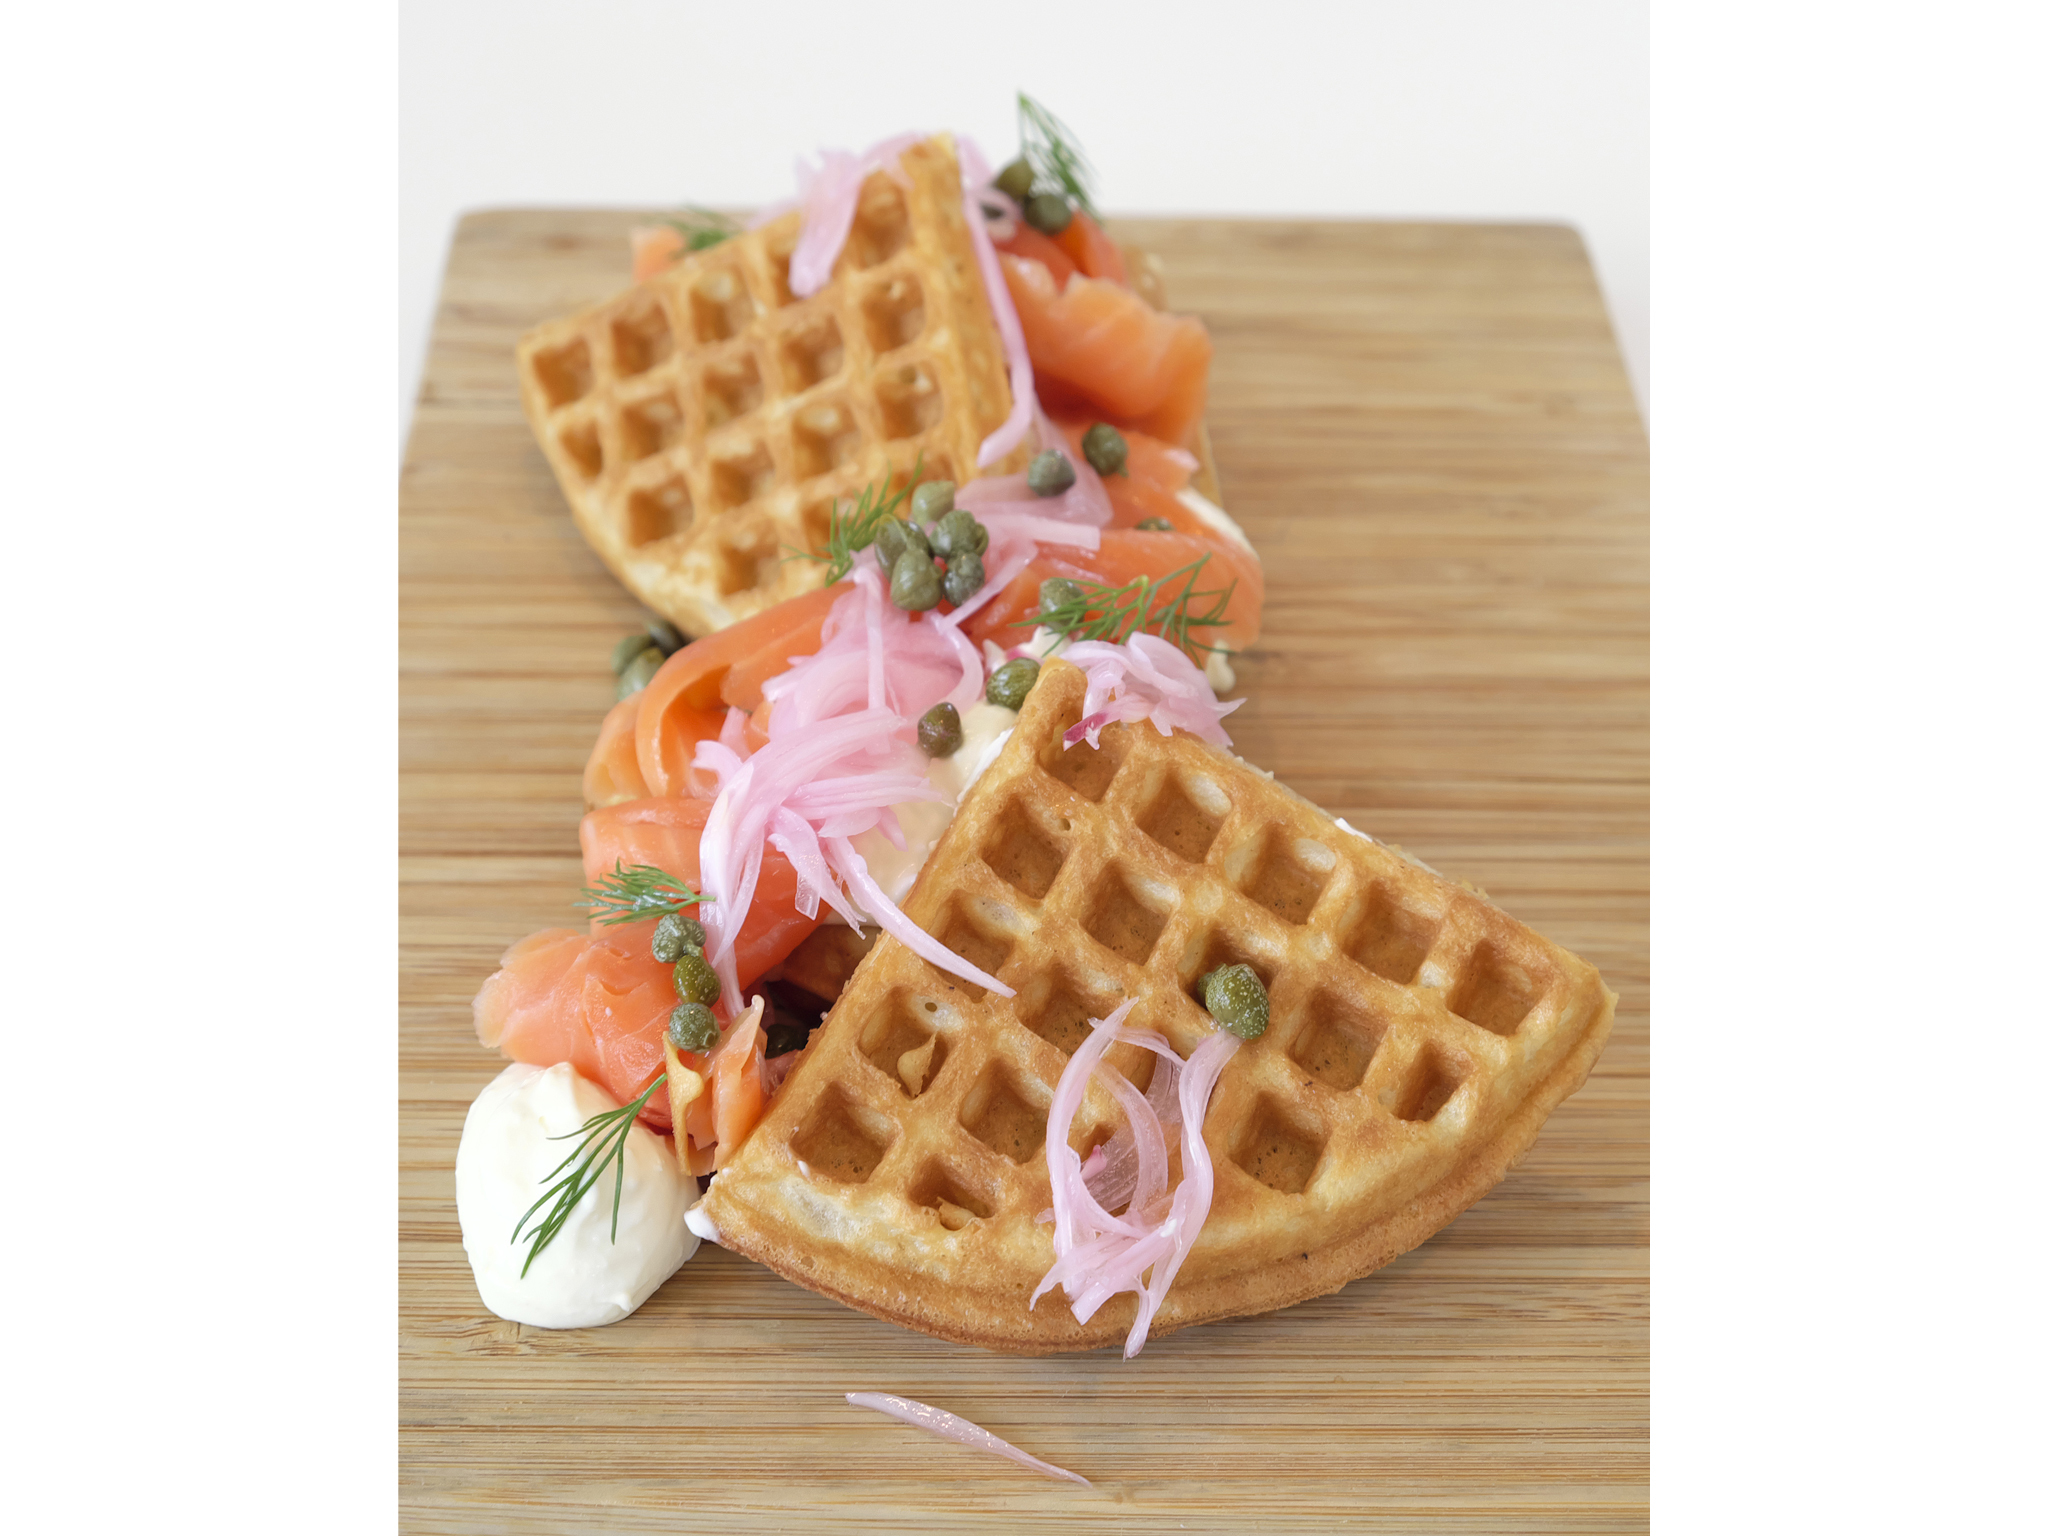 Waffles & beers – Sunday brunch at Mikkeller